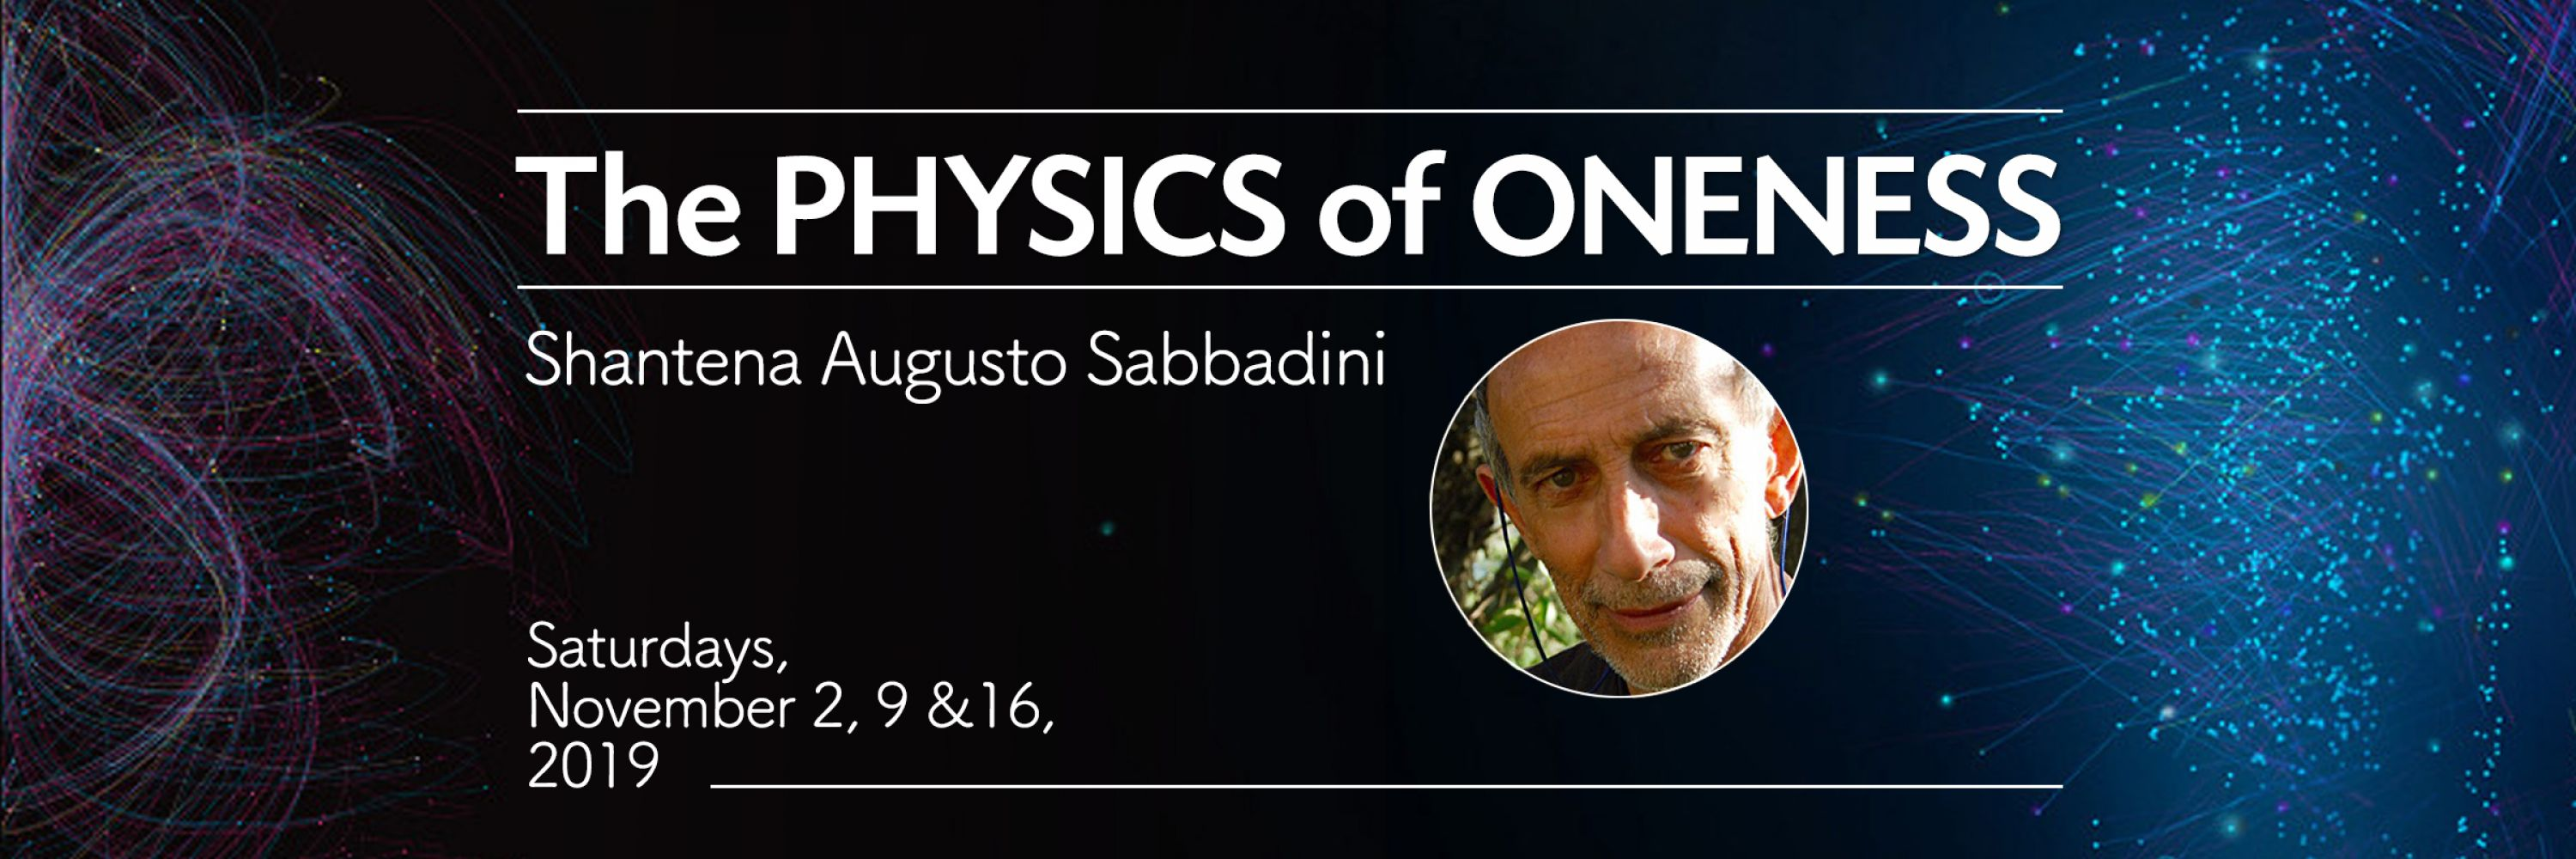 The Physics of Oneness